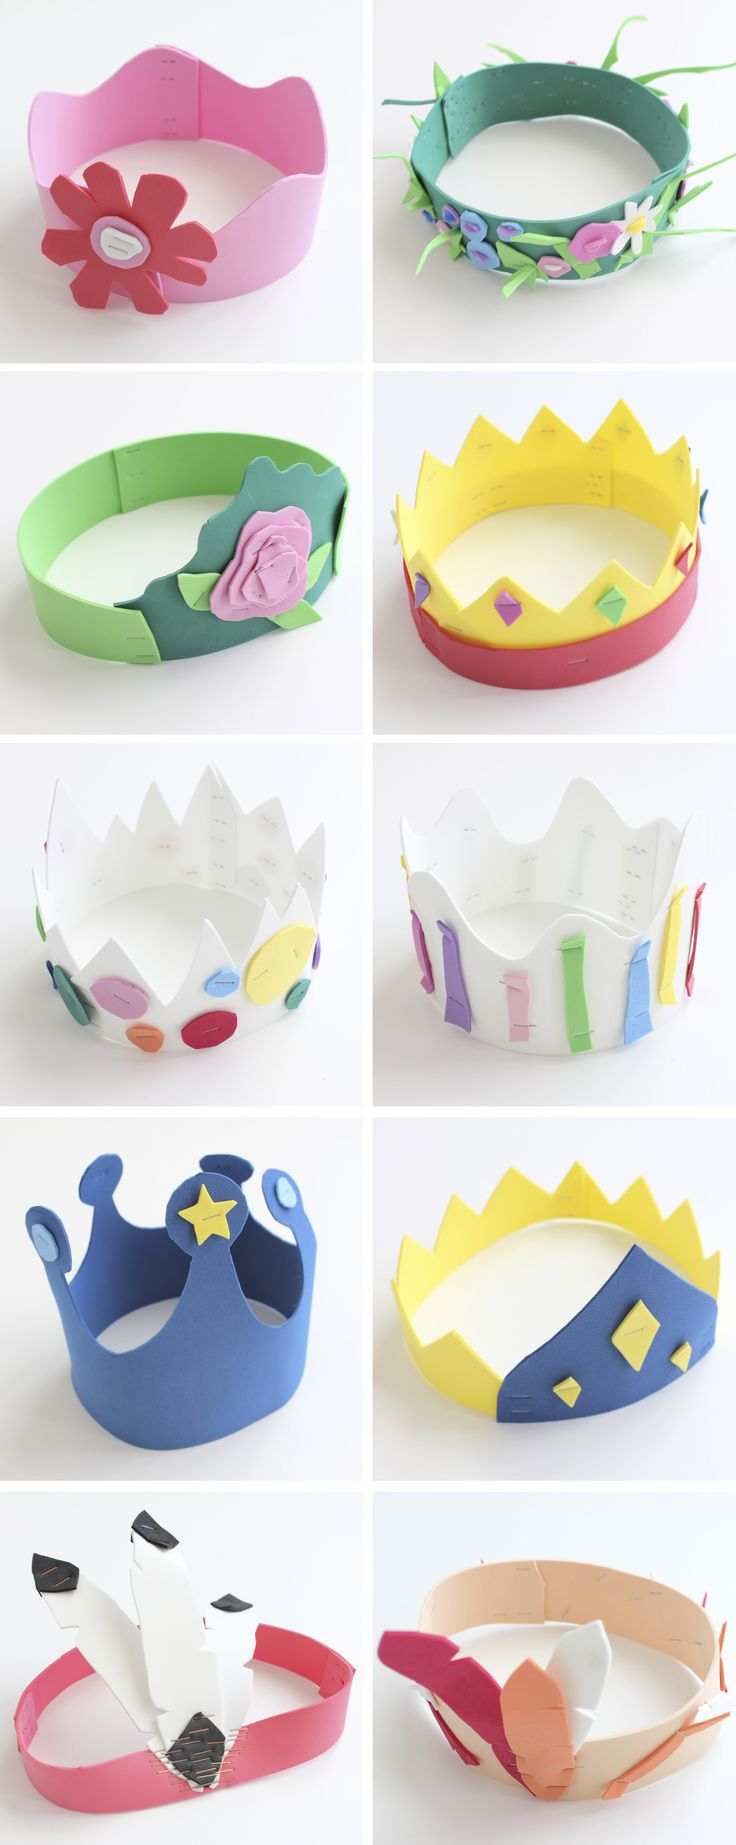 Foam crowns